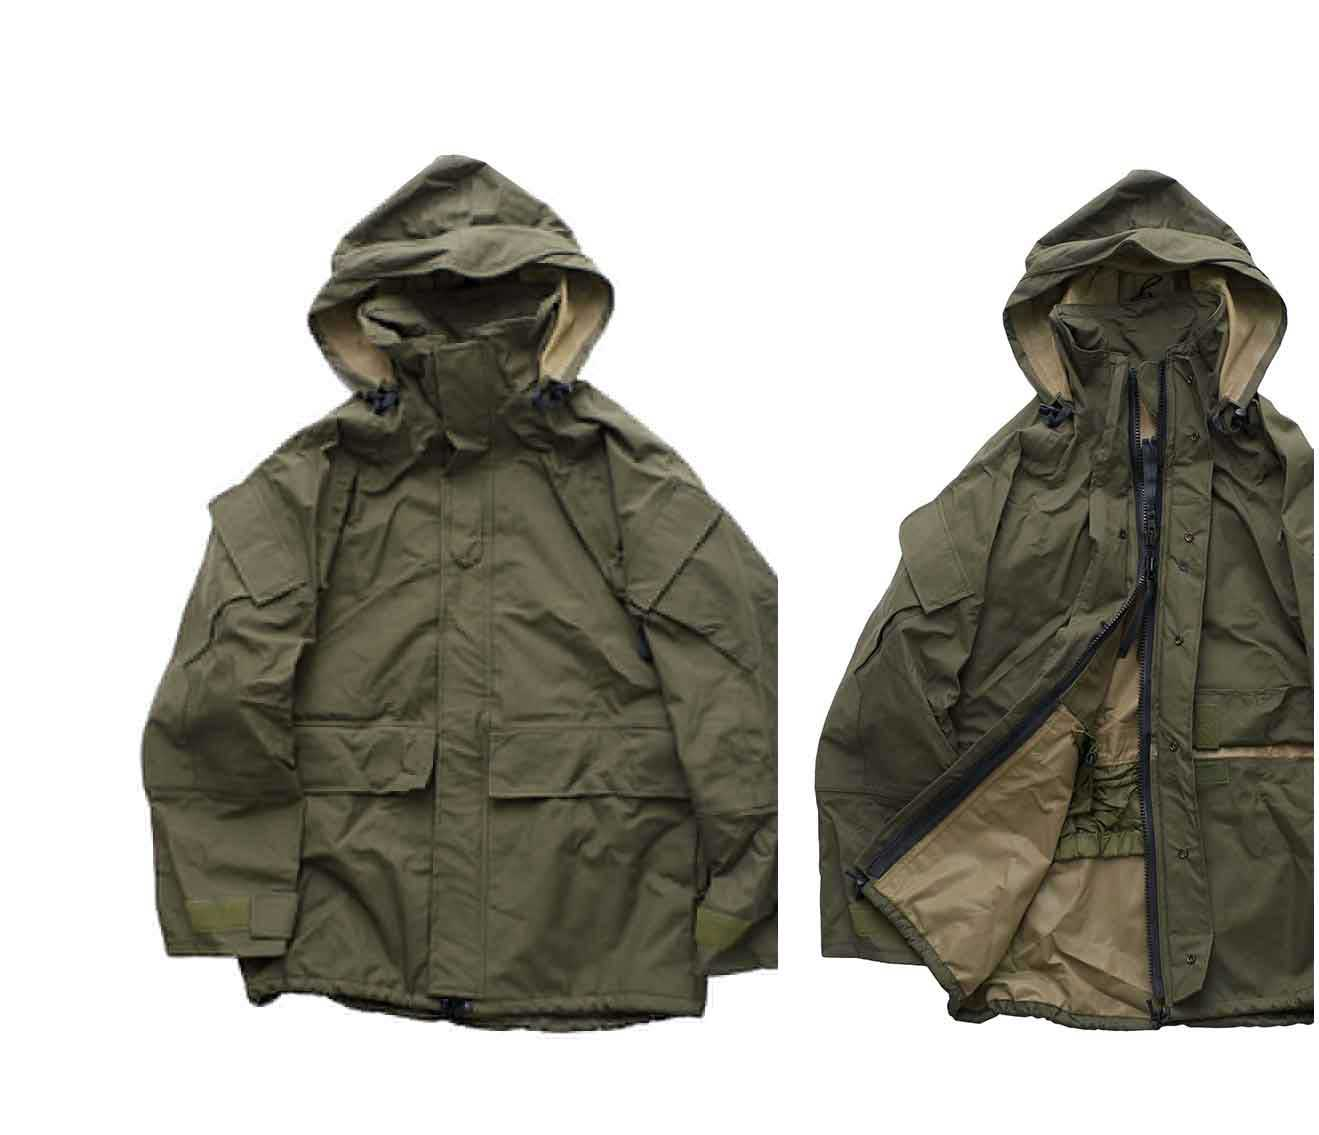 1990 DEAD STOCK US ARMY EXTENDED COLD WEATHER SYSTEM PARKA OLIVE 1